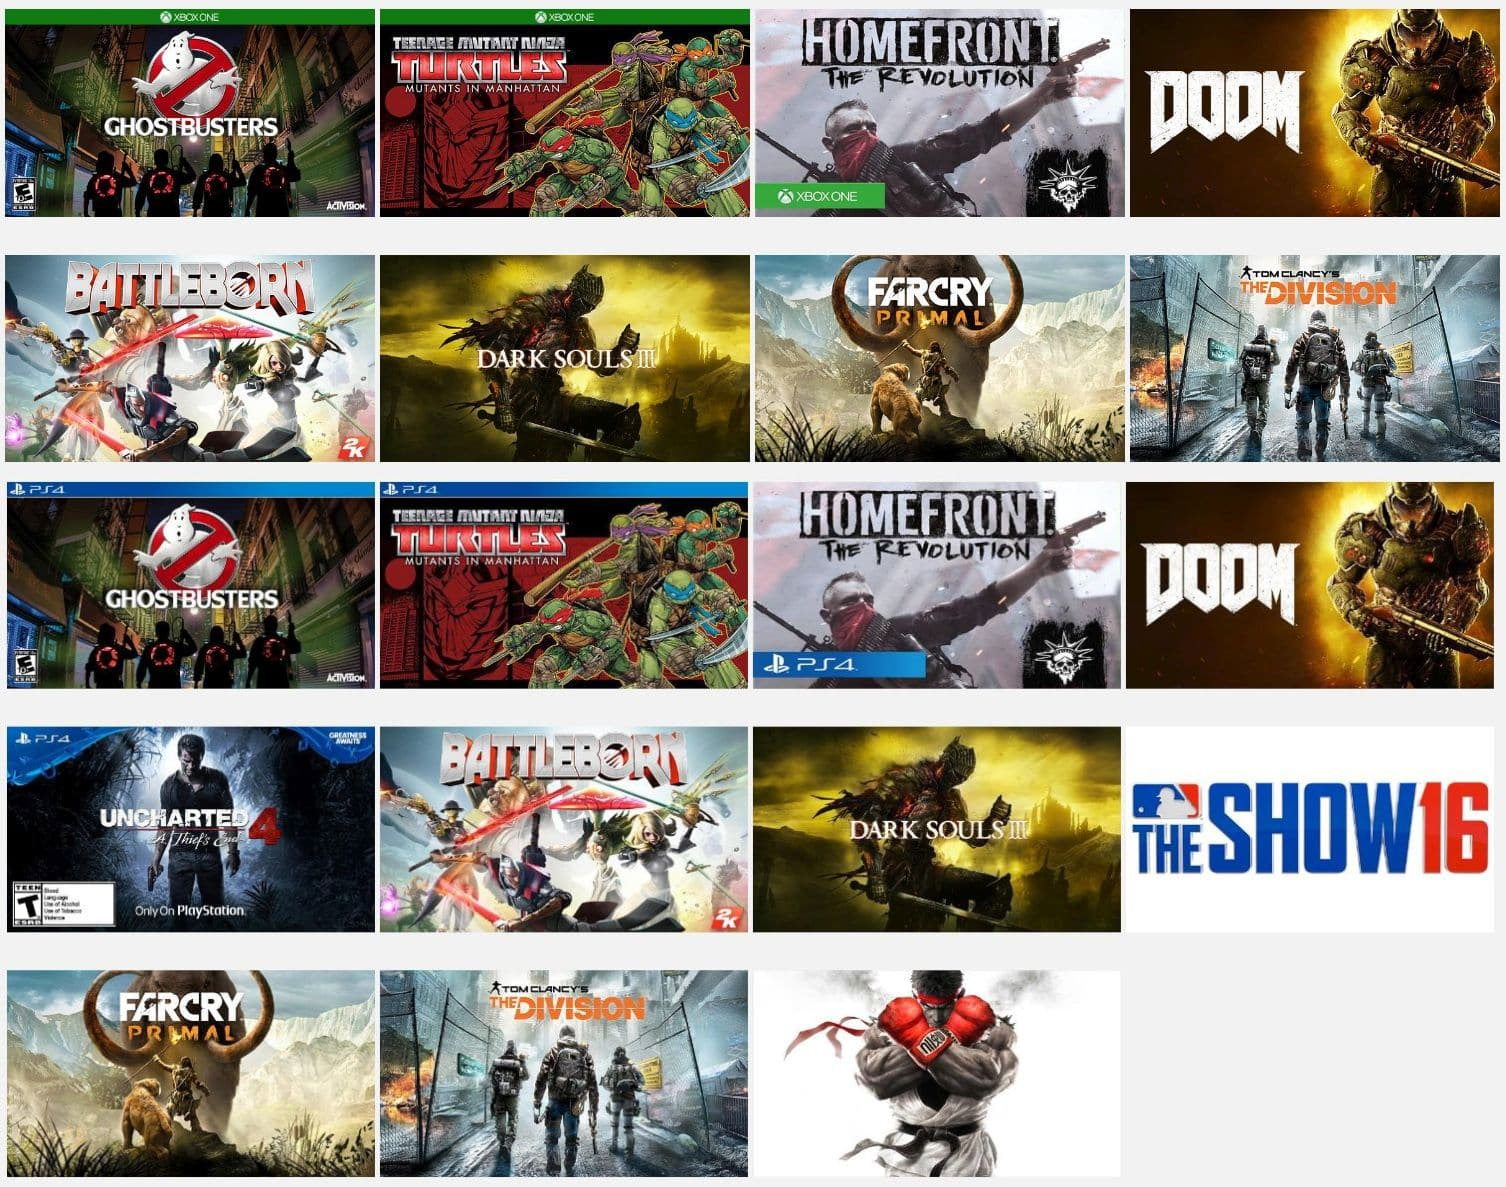 [PS4/XBOX ONE] Redbox: Street Fighter V, Just Cause 3, Homefront: The Revolution - $13.99 each YMMV